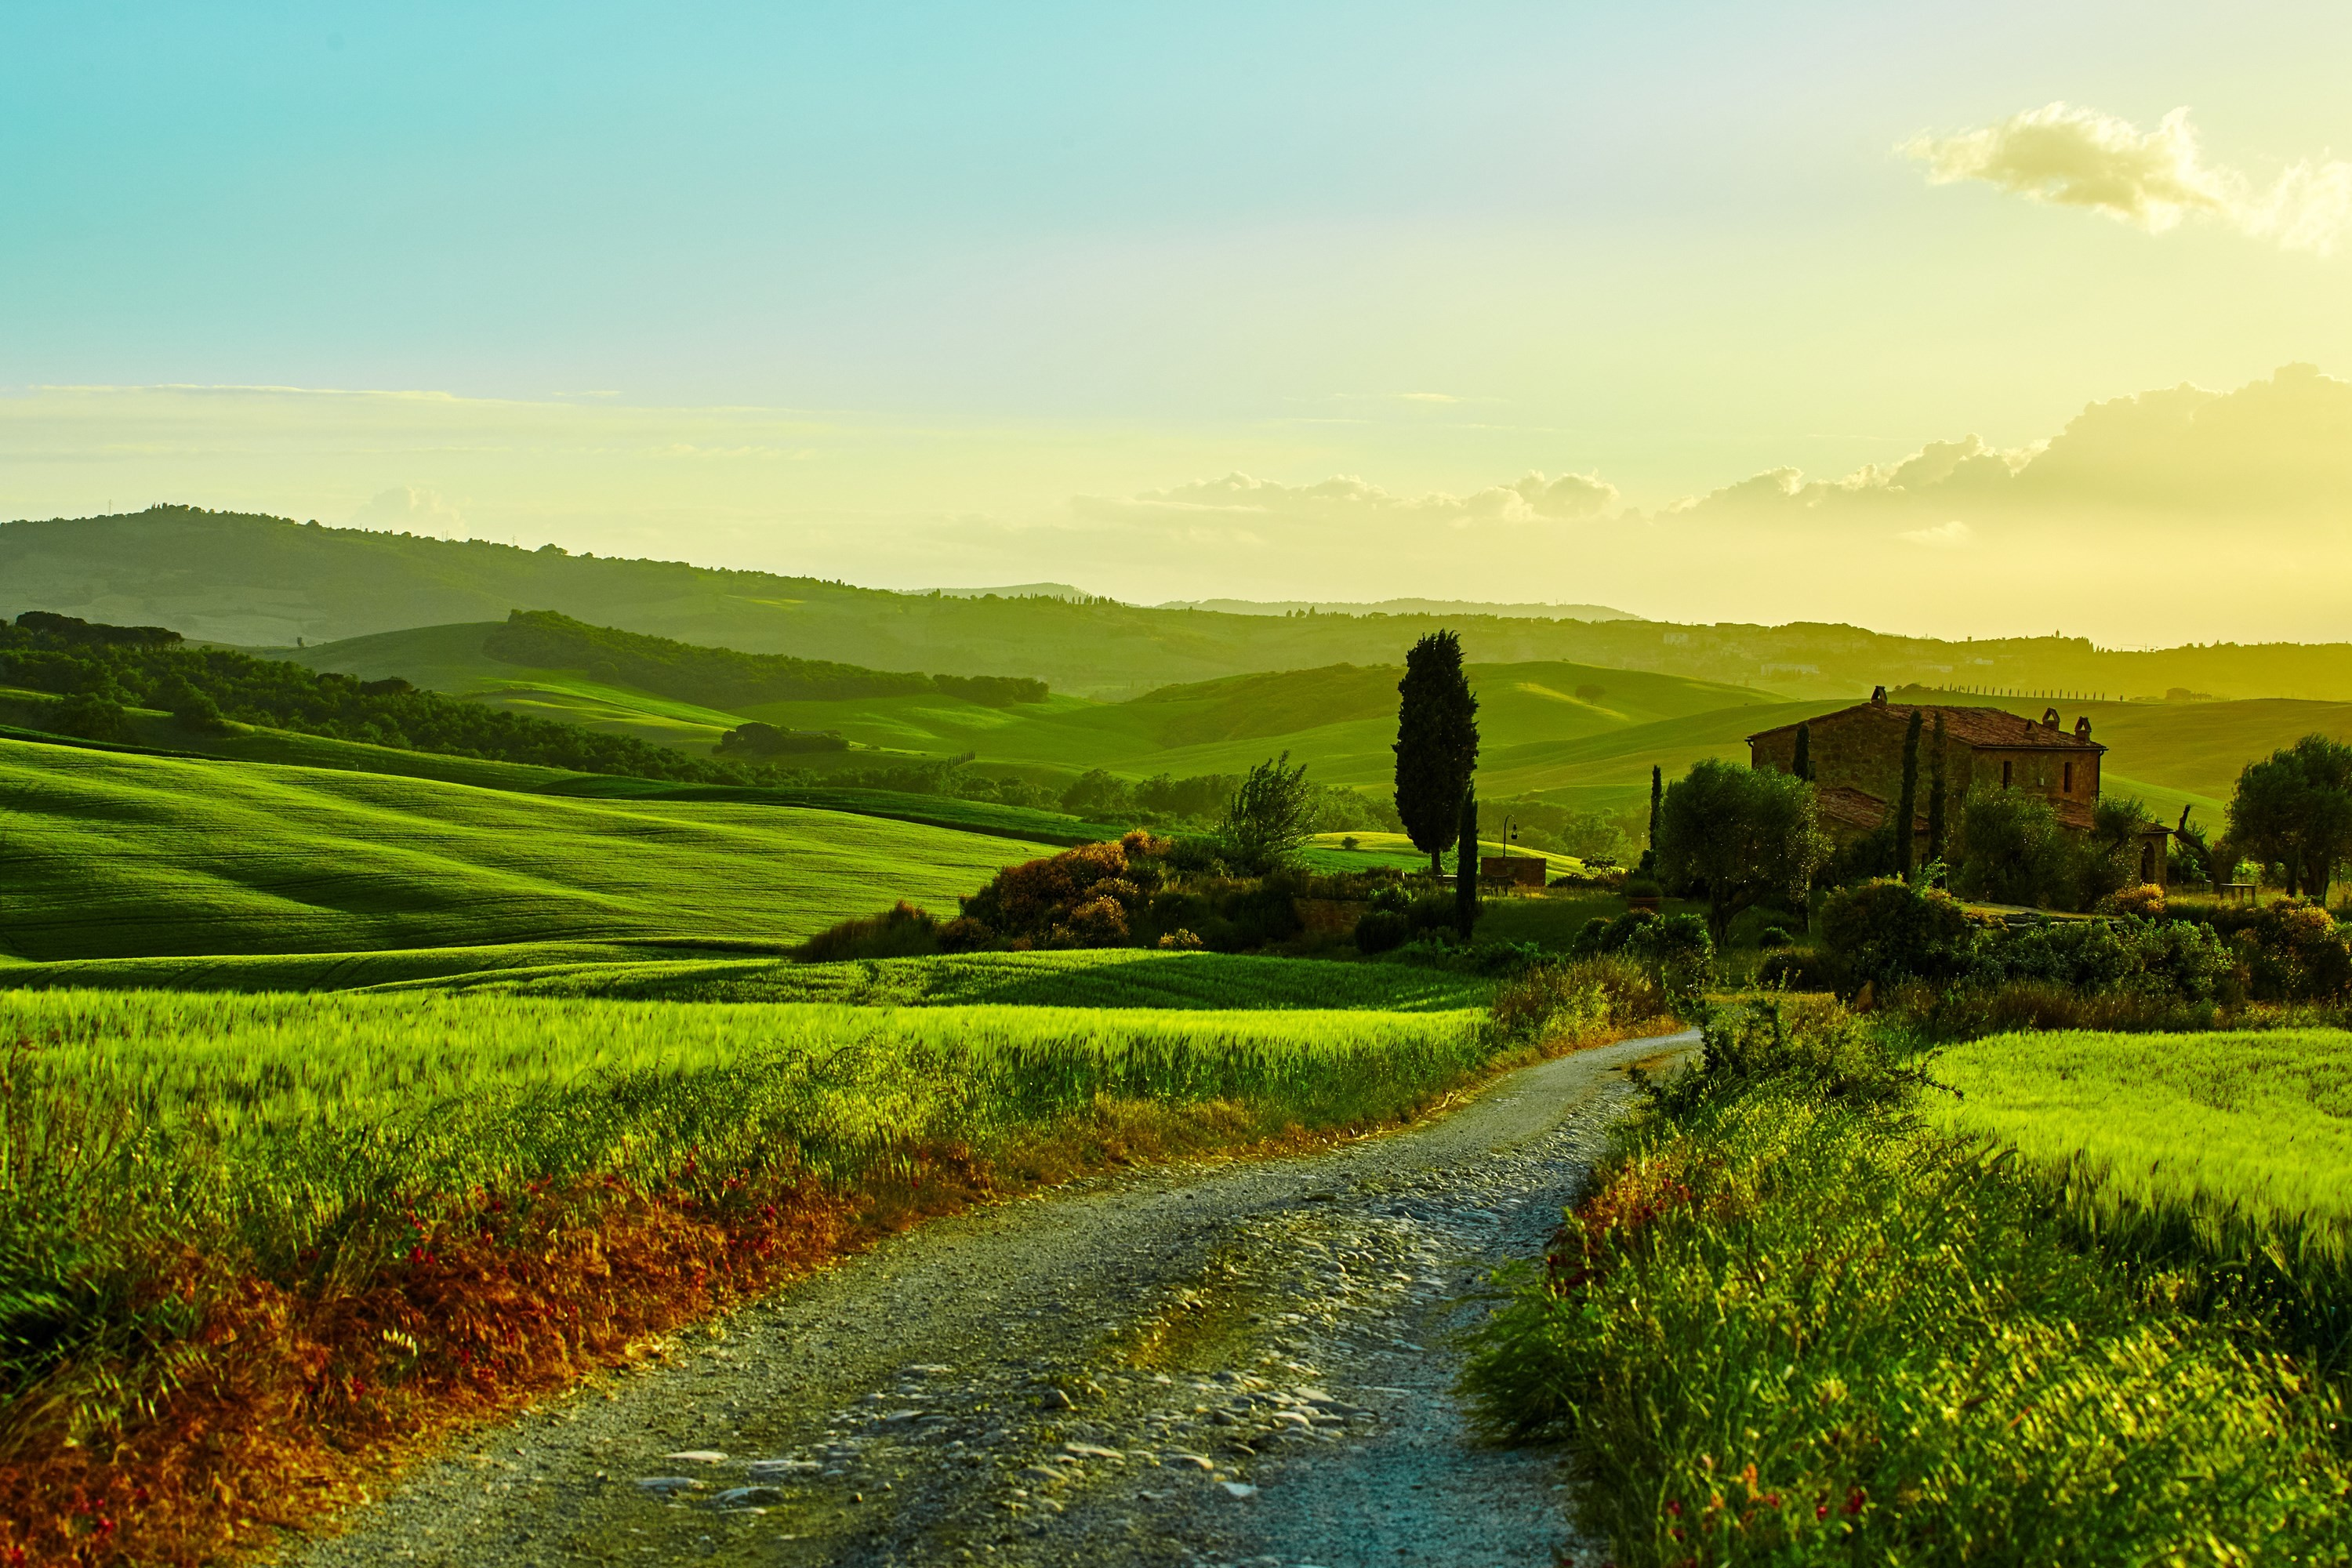 3000x2000 high resolution wallpapers widescreen tuscany - tuscany category